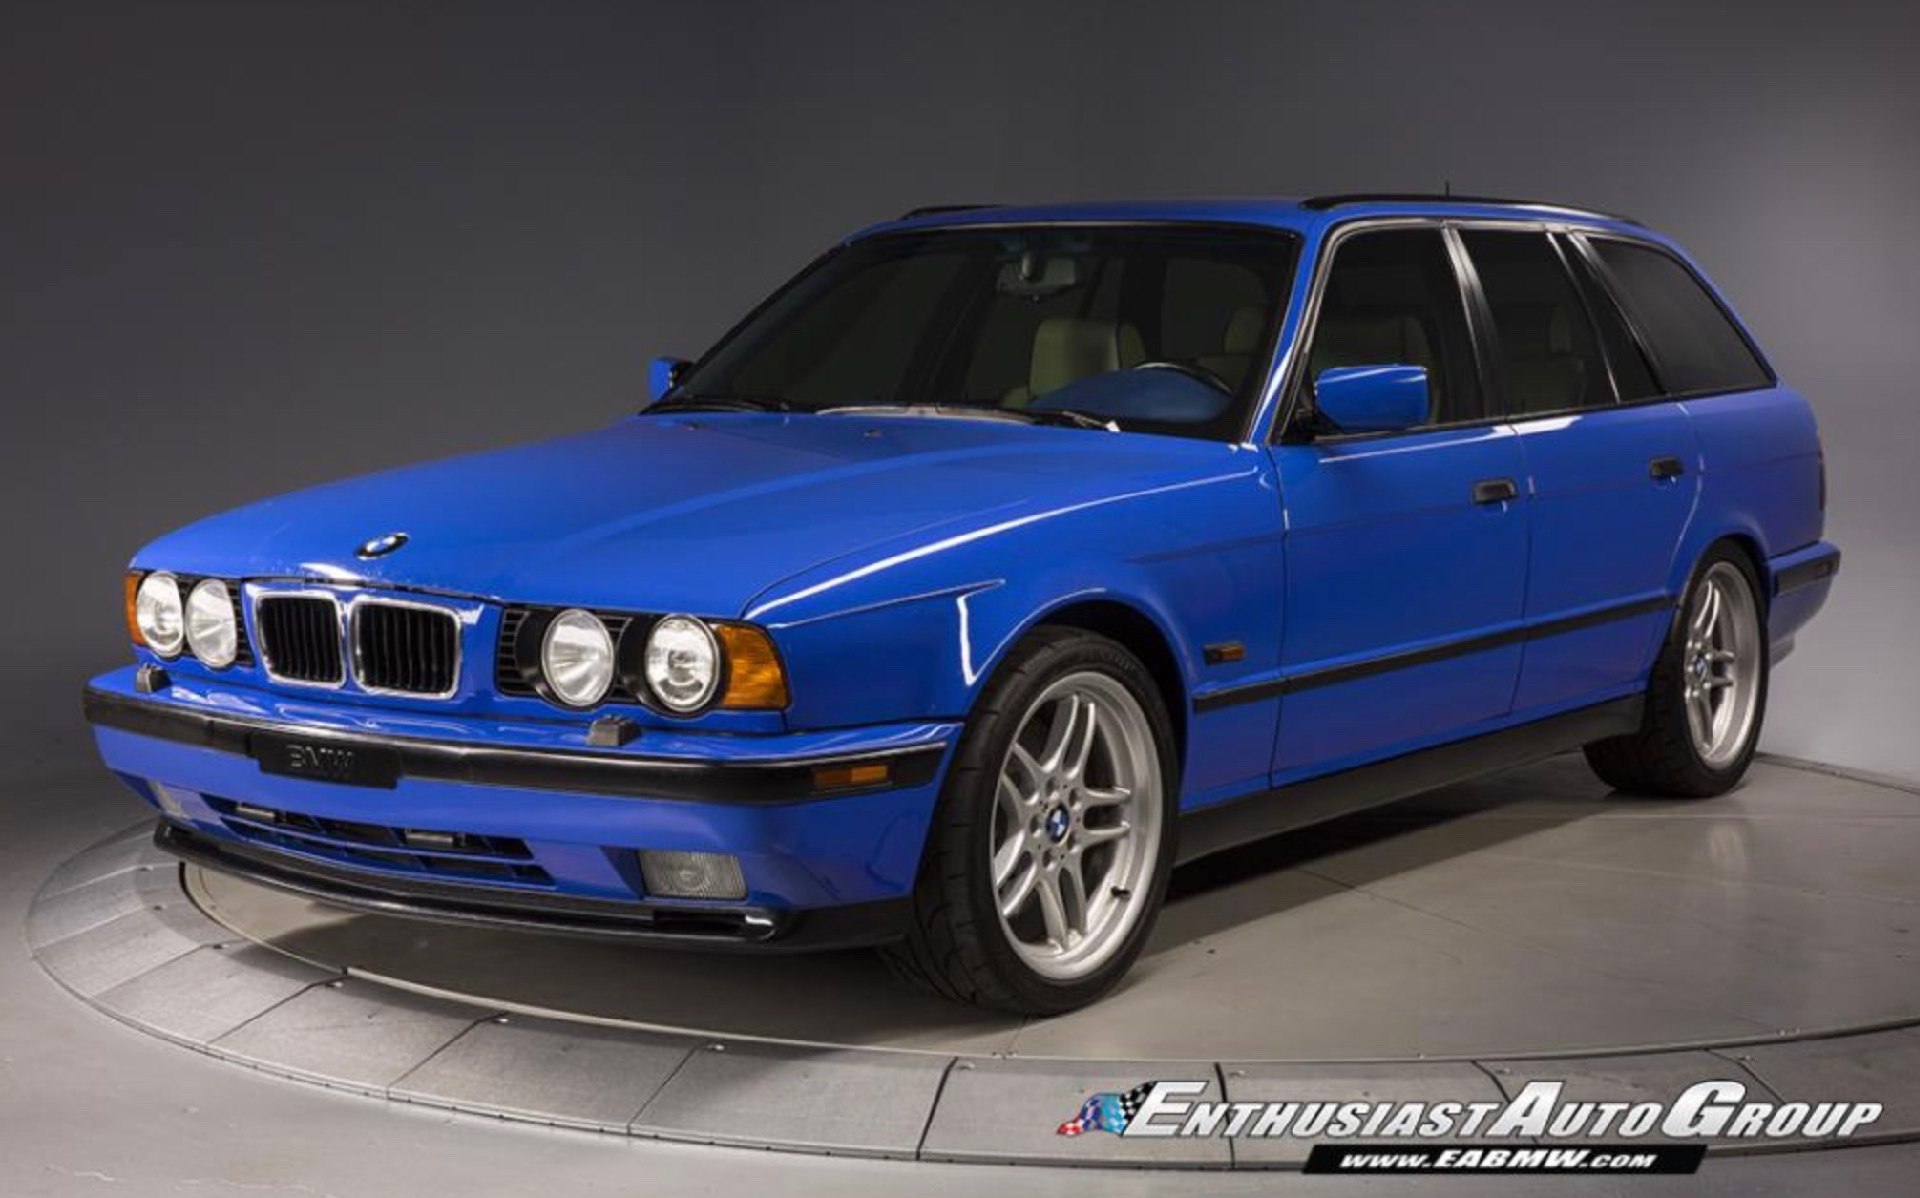 Stunningly Rare 1995 Bmw M5 Wagon For Sale For 150 000